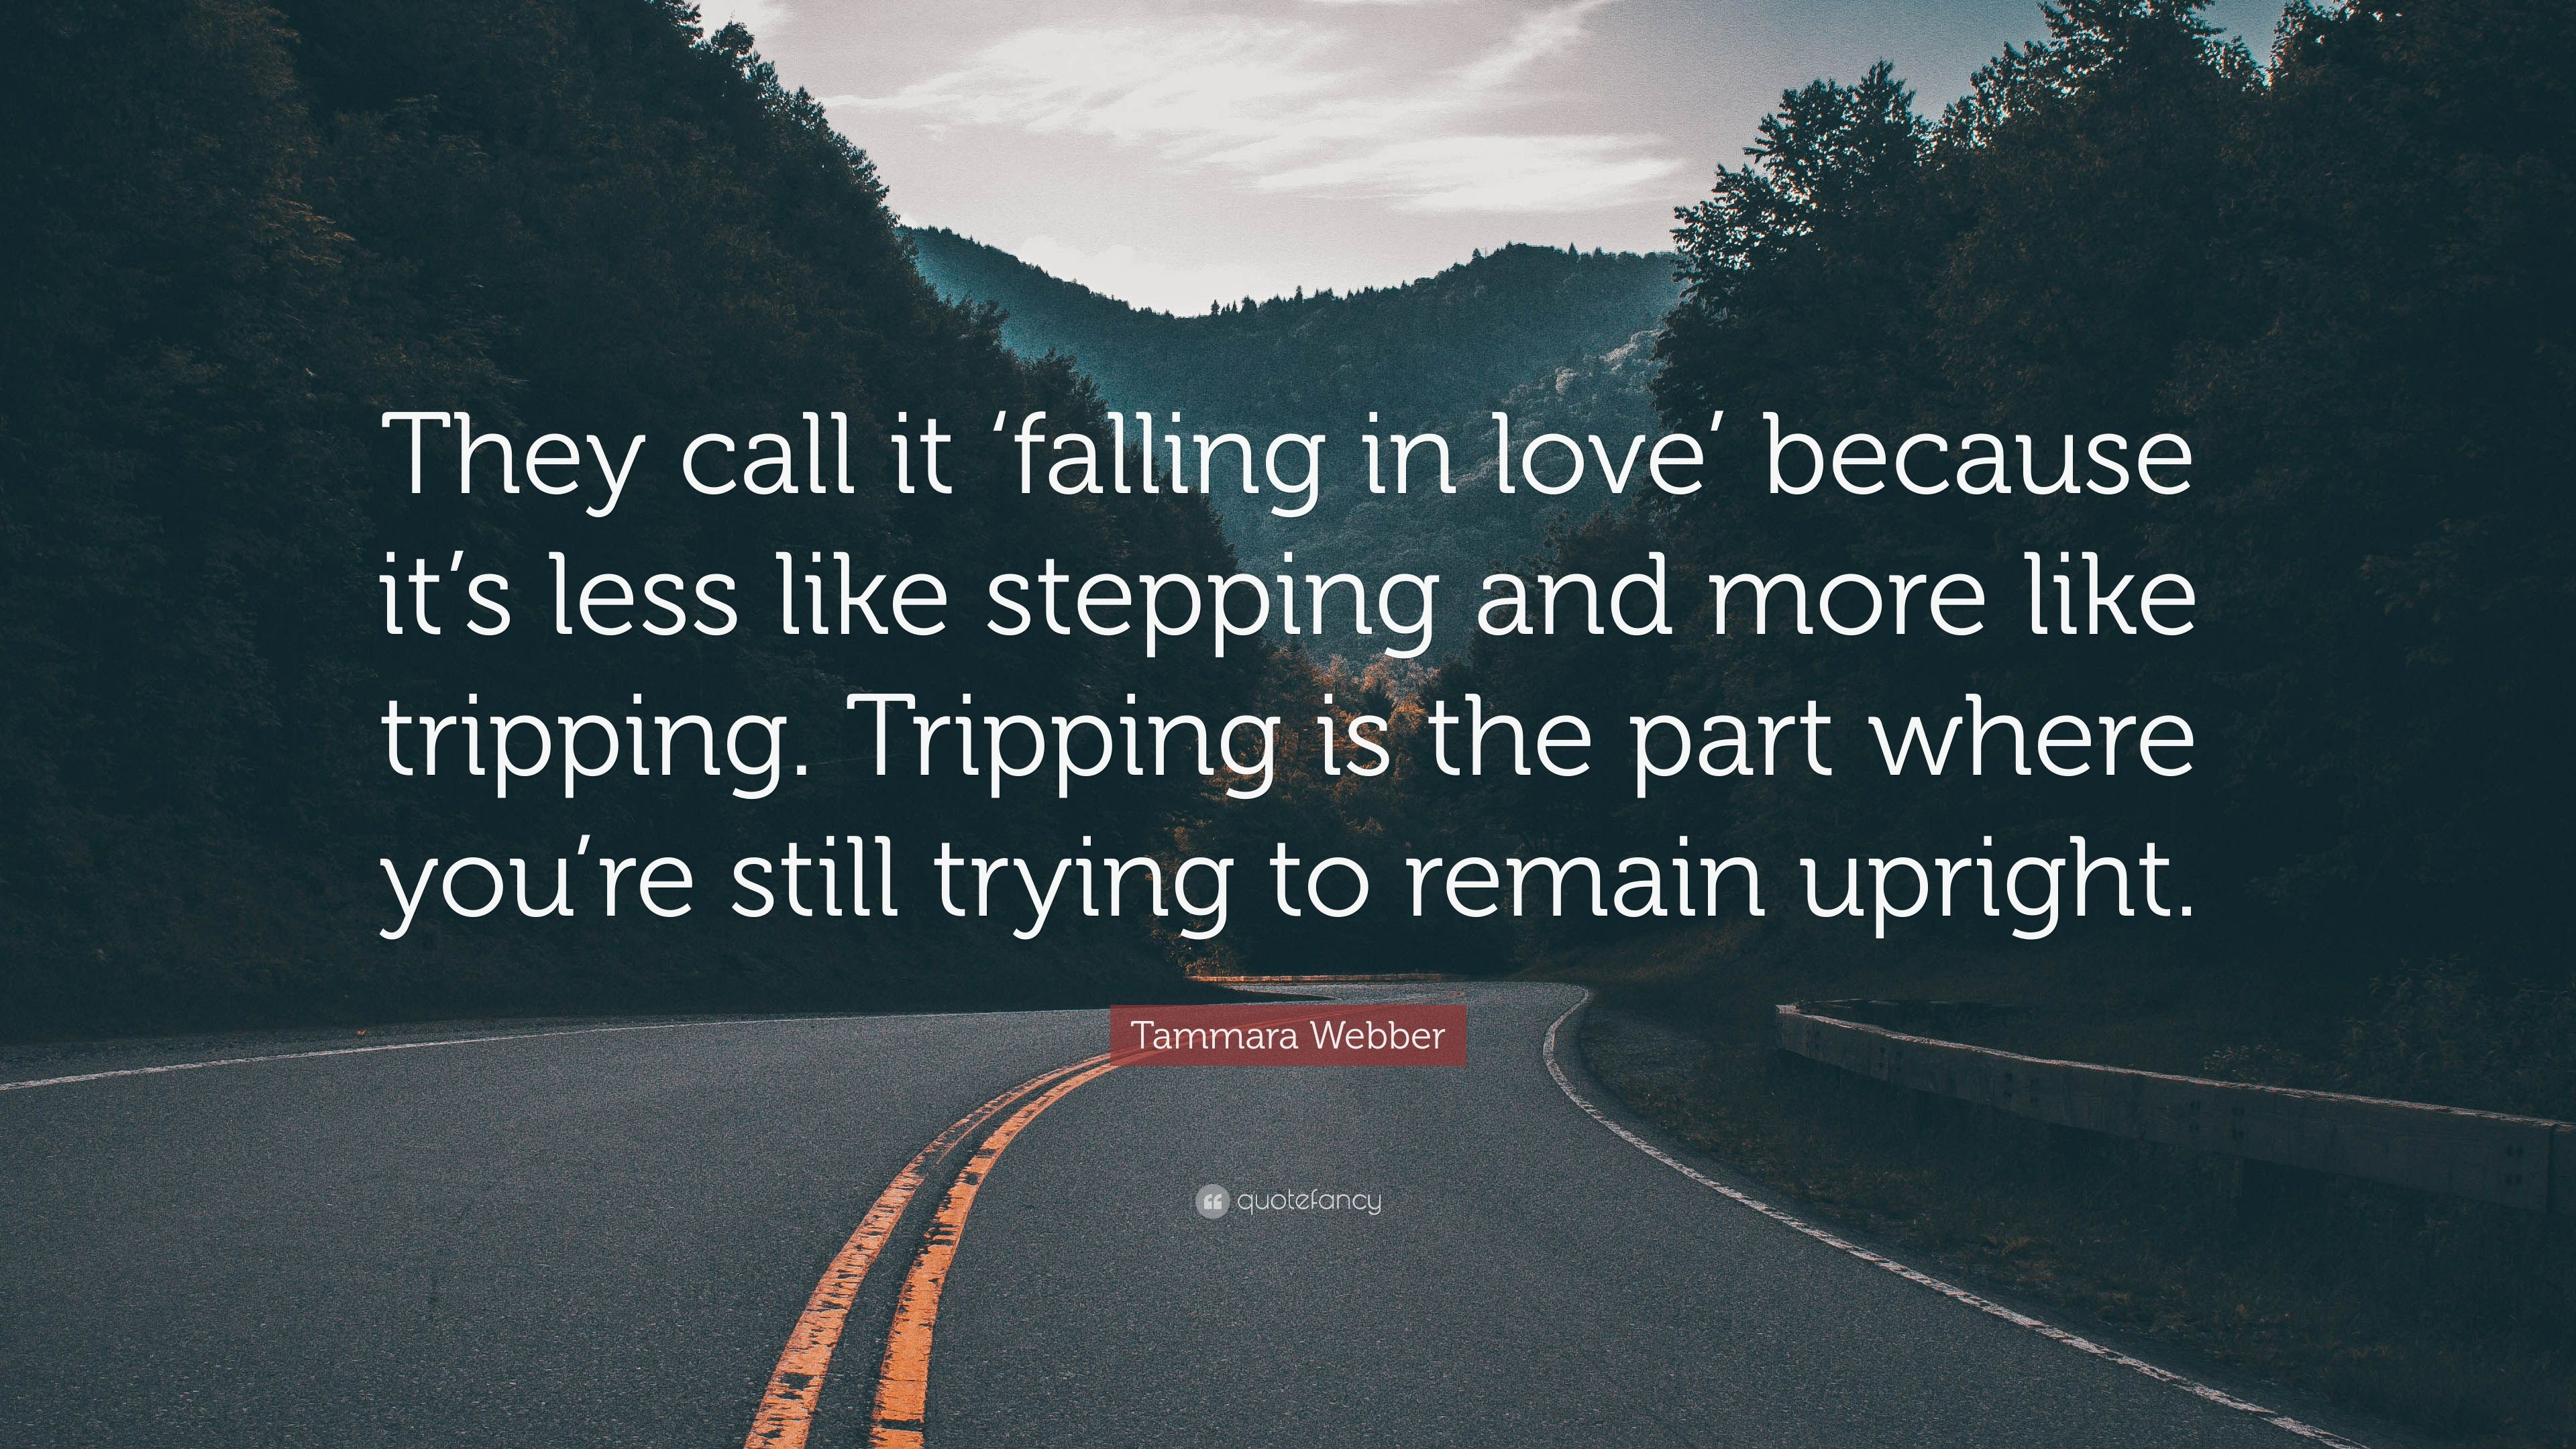 Why do they call it falling in love